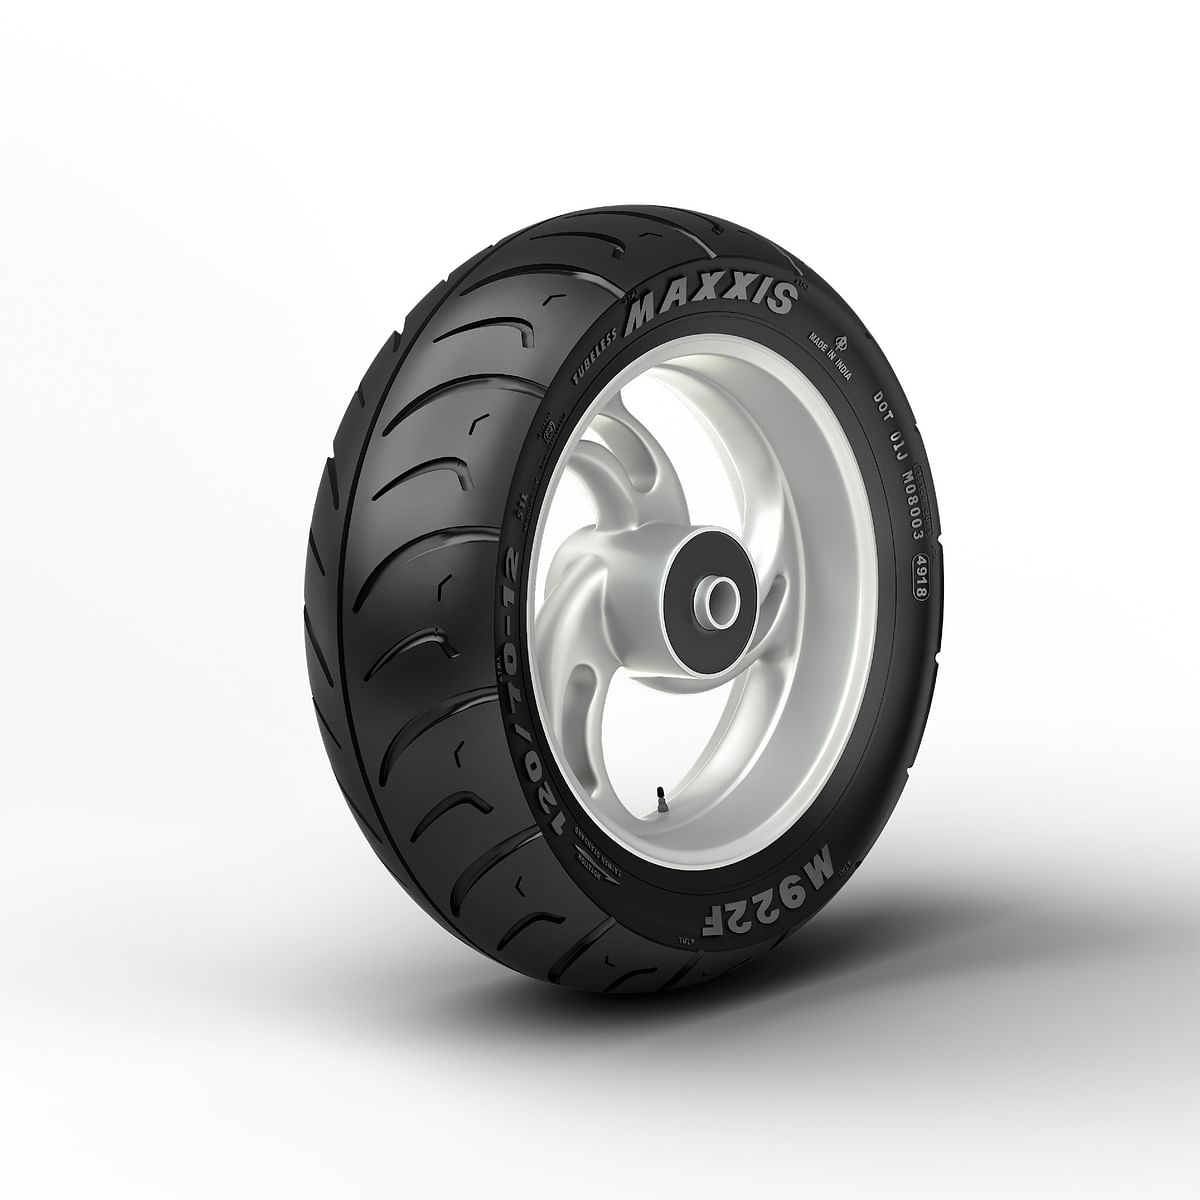 The tyres is suitable for 12-inch wheel size